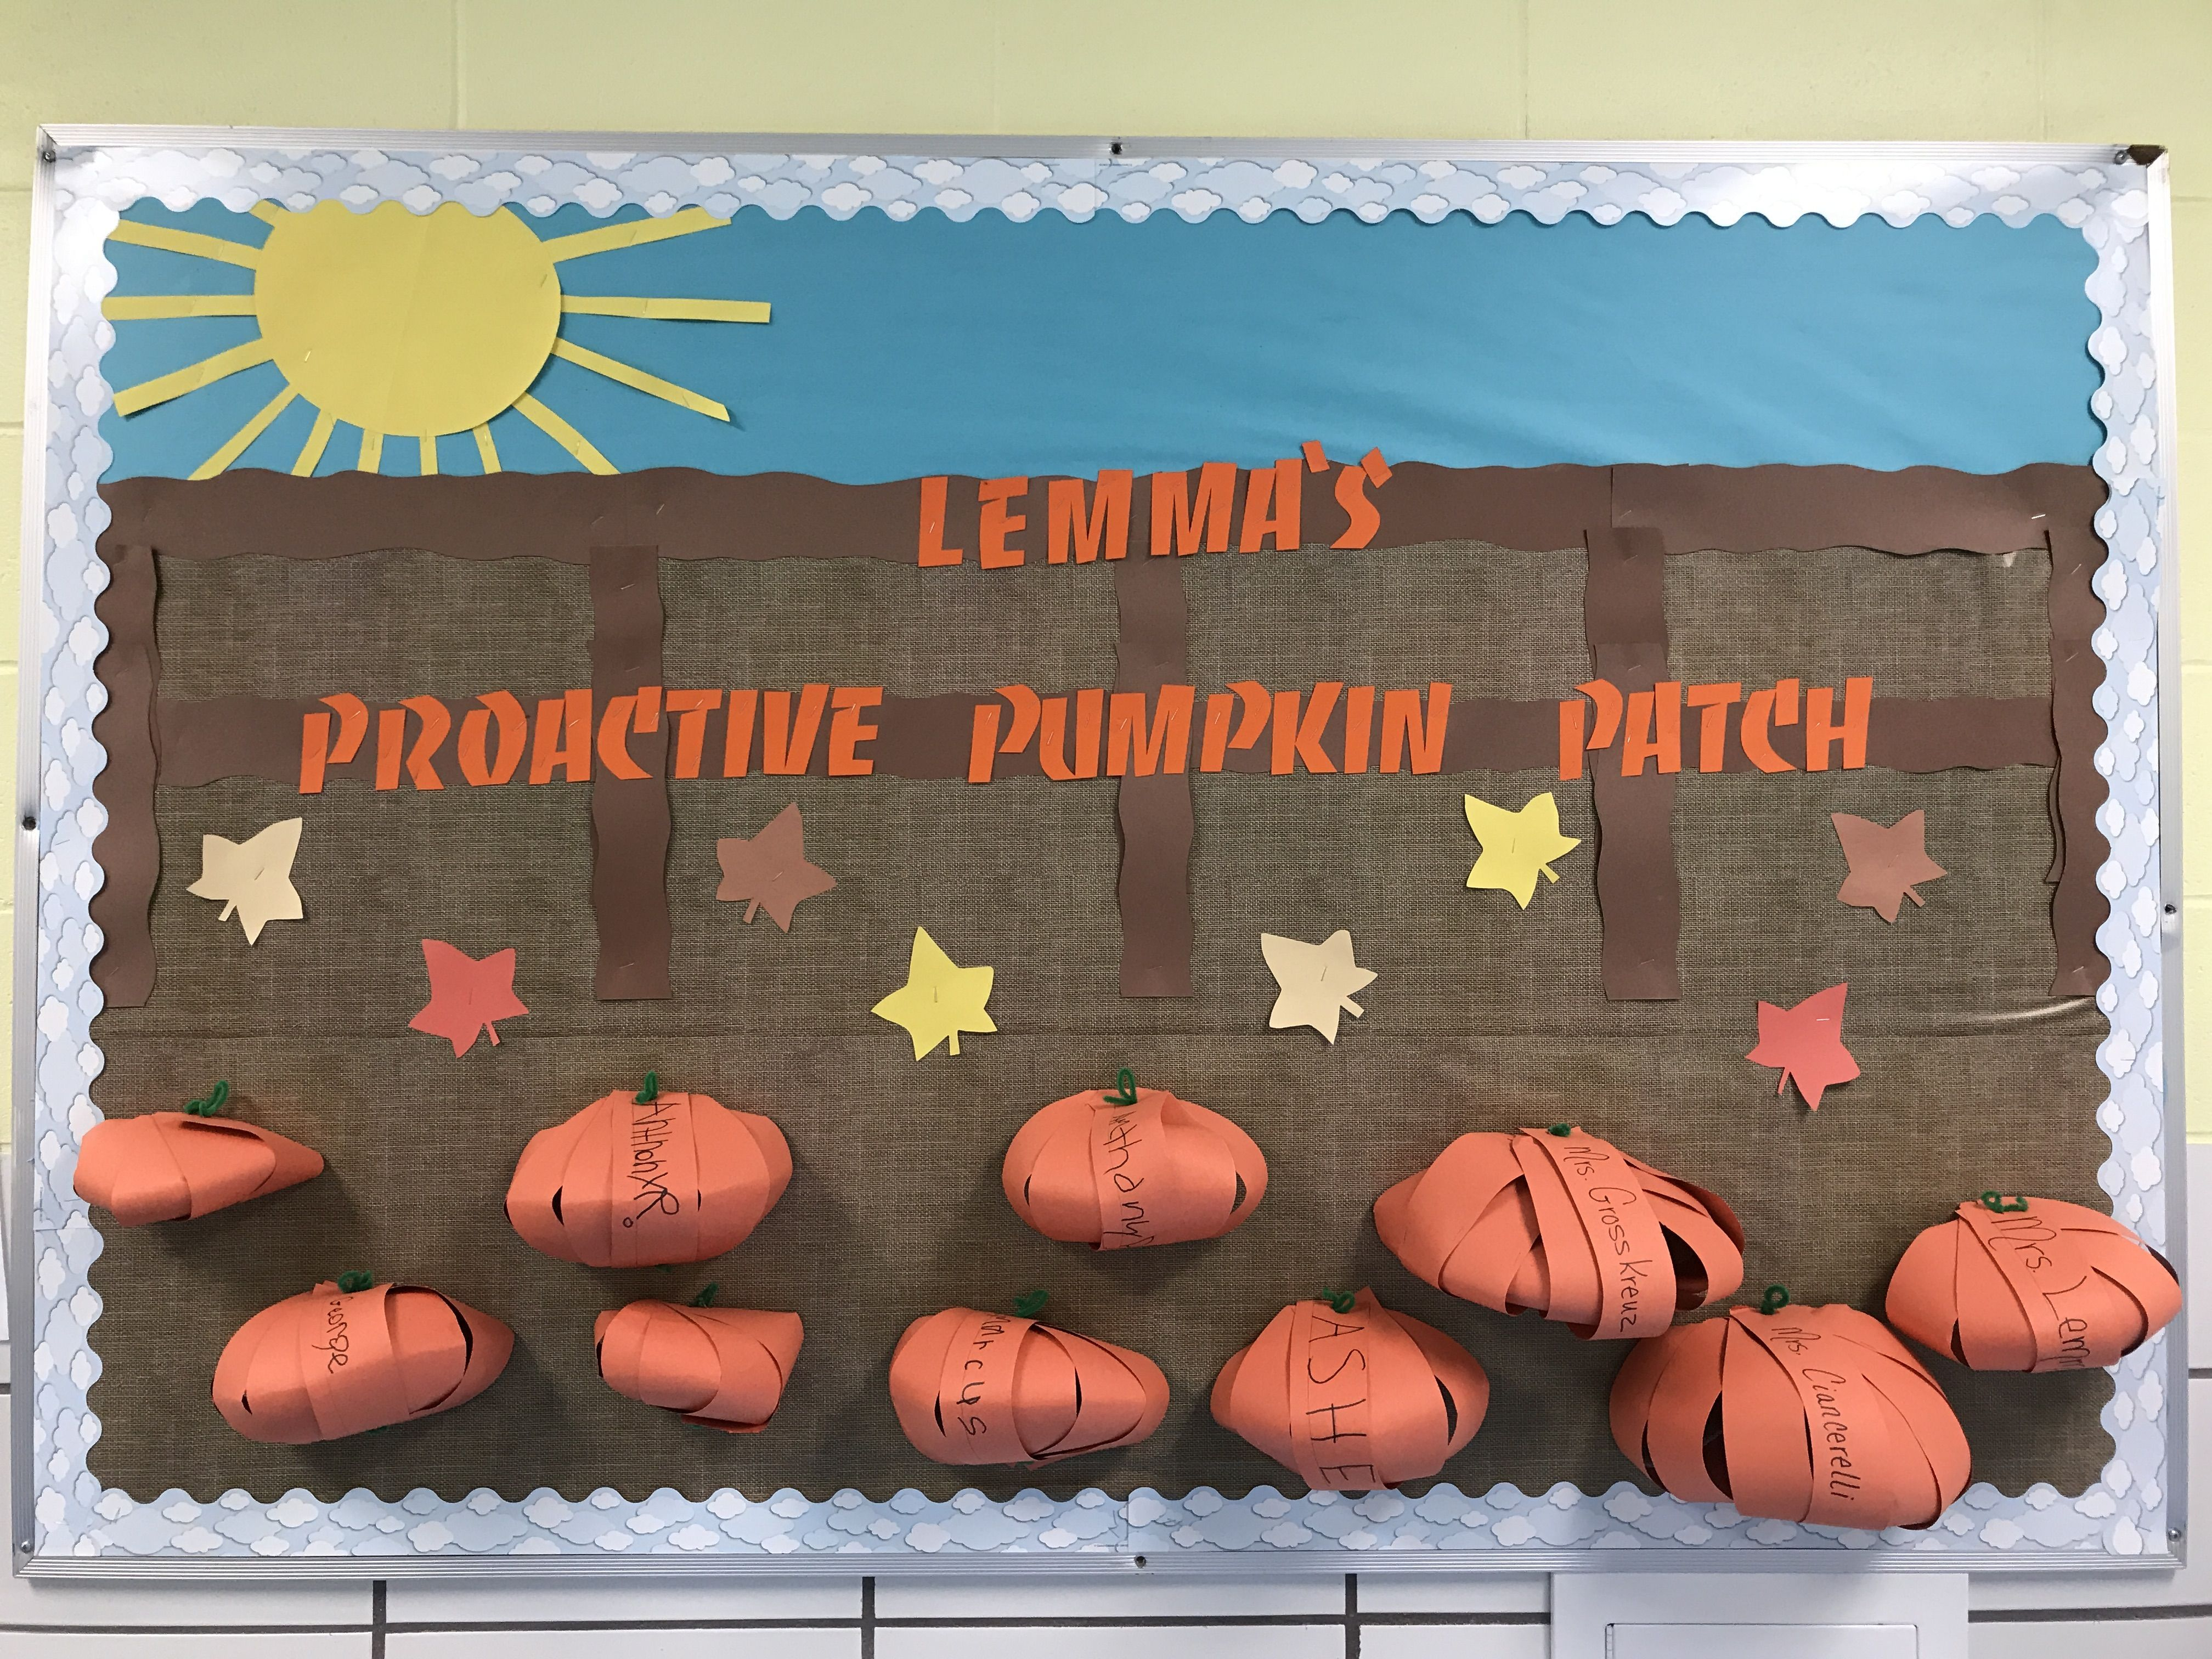 Proactive pumpkin patch. Leader in me bulletin board. #pumpkinpatchbulletinboard Proactive pumpkin patch. Leader in me bulletin board. #pumpkinpatchbulletinboard